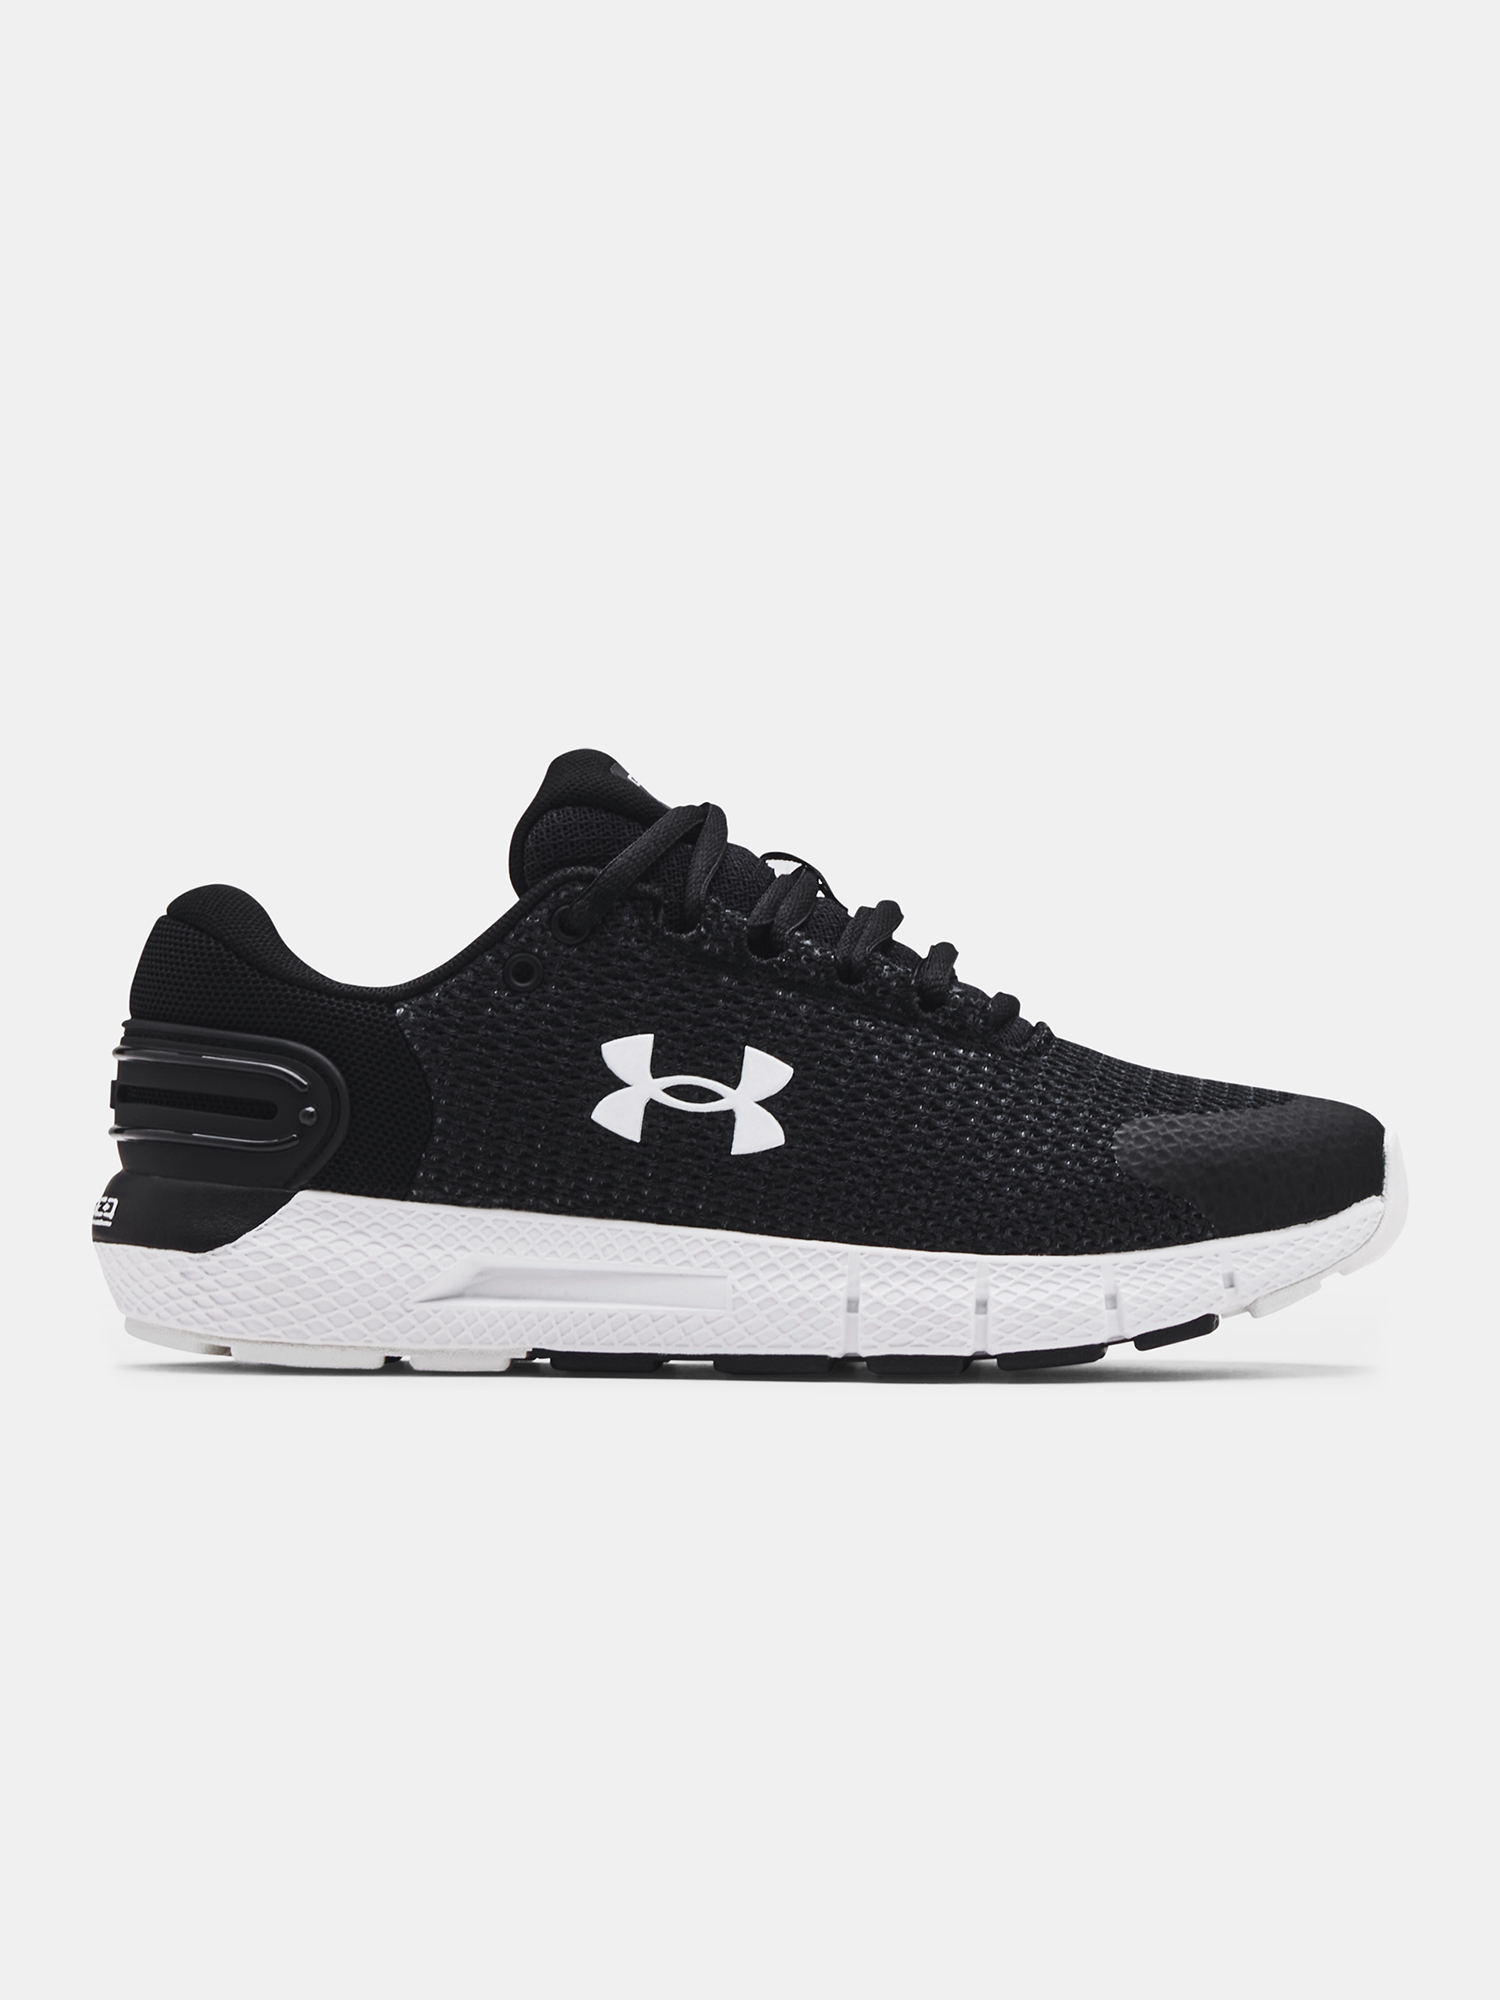 Topánky Under Armour W Charged Rogue 2.5 - čierna - 42